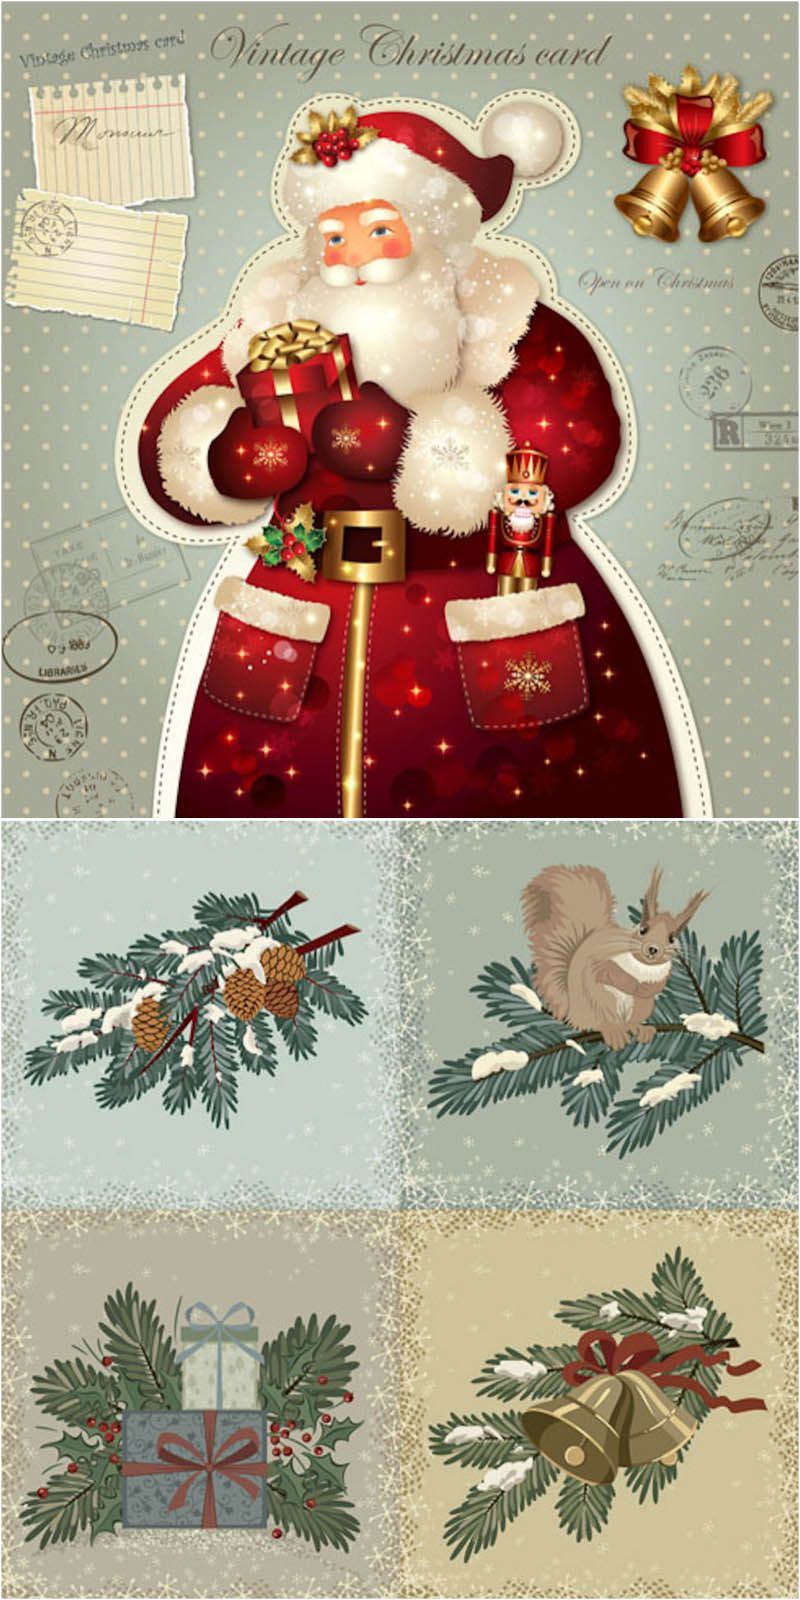 Vintage Hand Drawn Christmas Cards Vector | Free Stock Vector Art U0026  Illustrations, EPS,